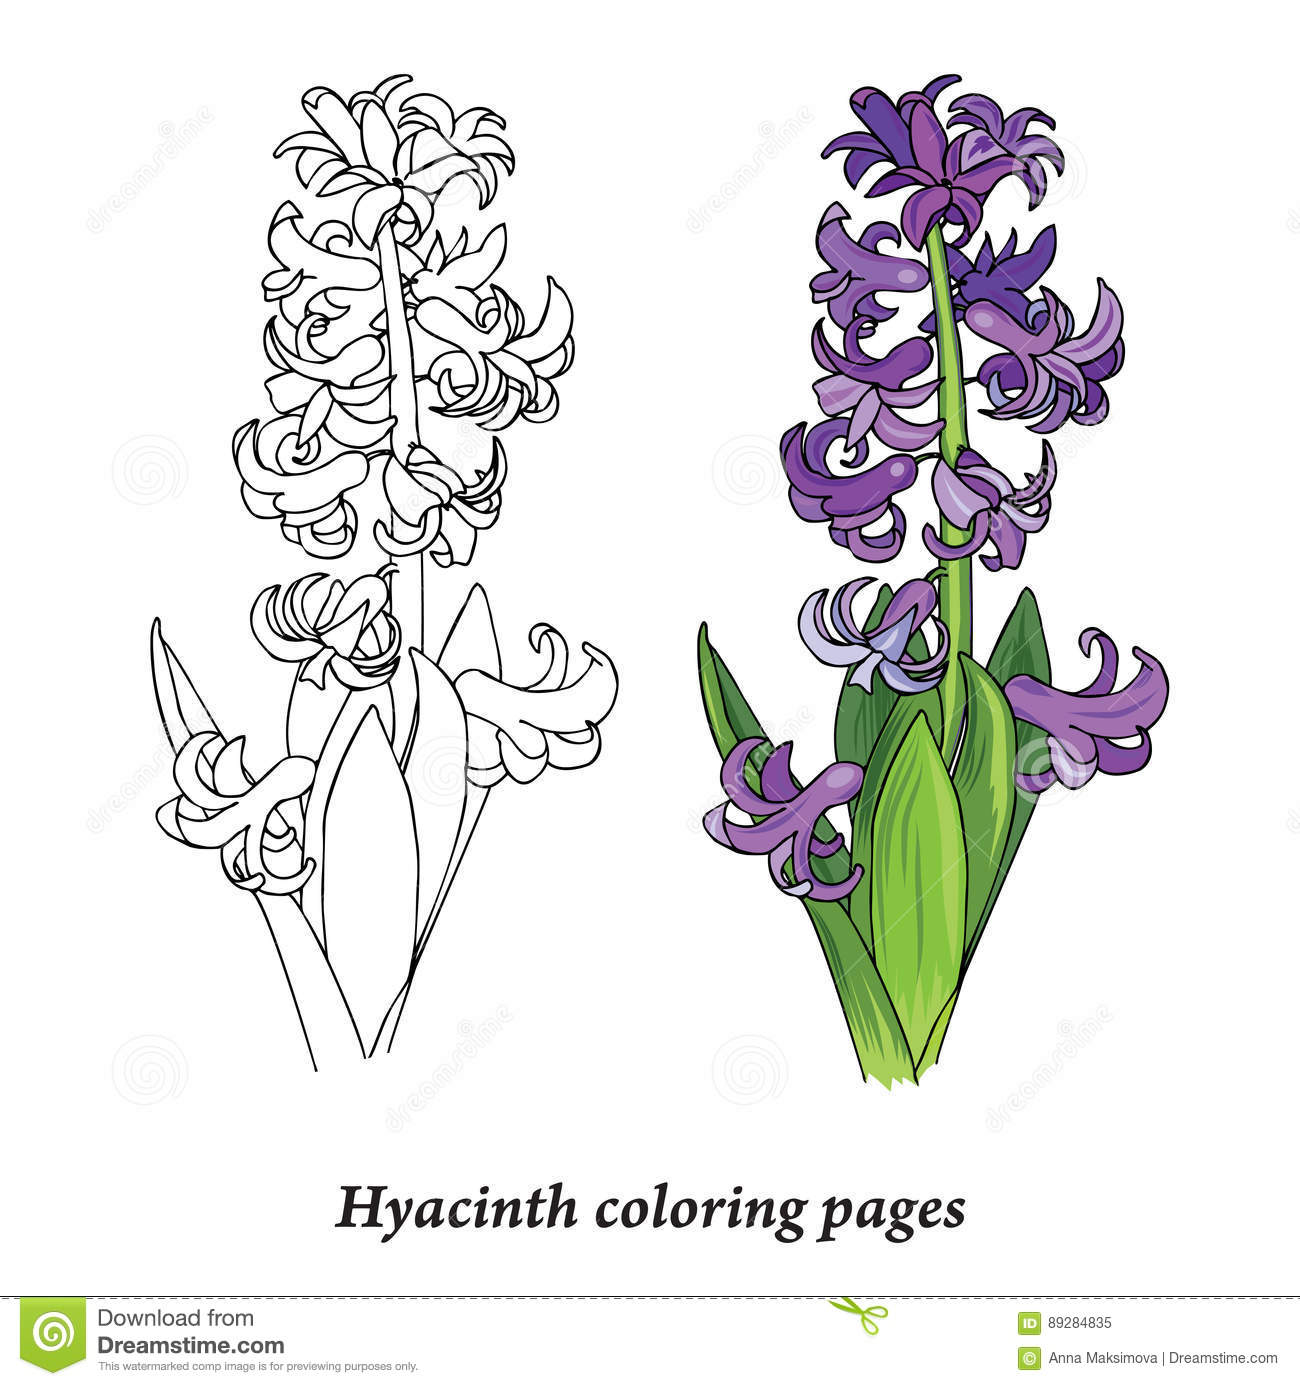 hyacinth coloring pages stock vector image 89284835